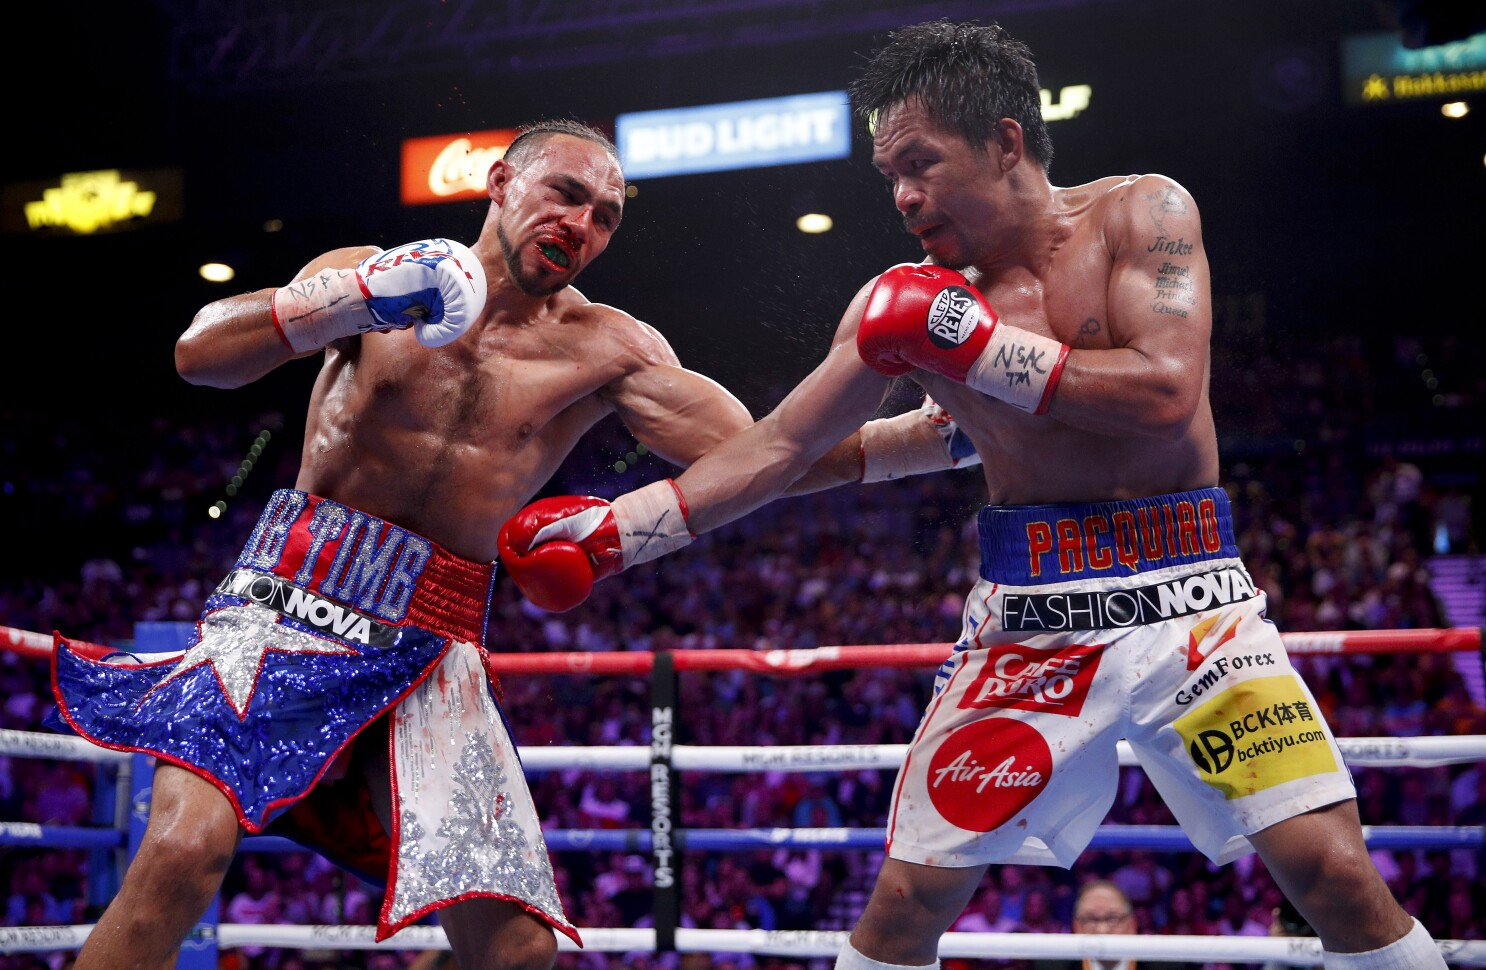 Manny Pacquiao defeats Keith Thurman in welterweight unification title bout